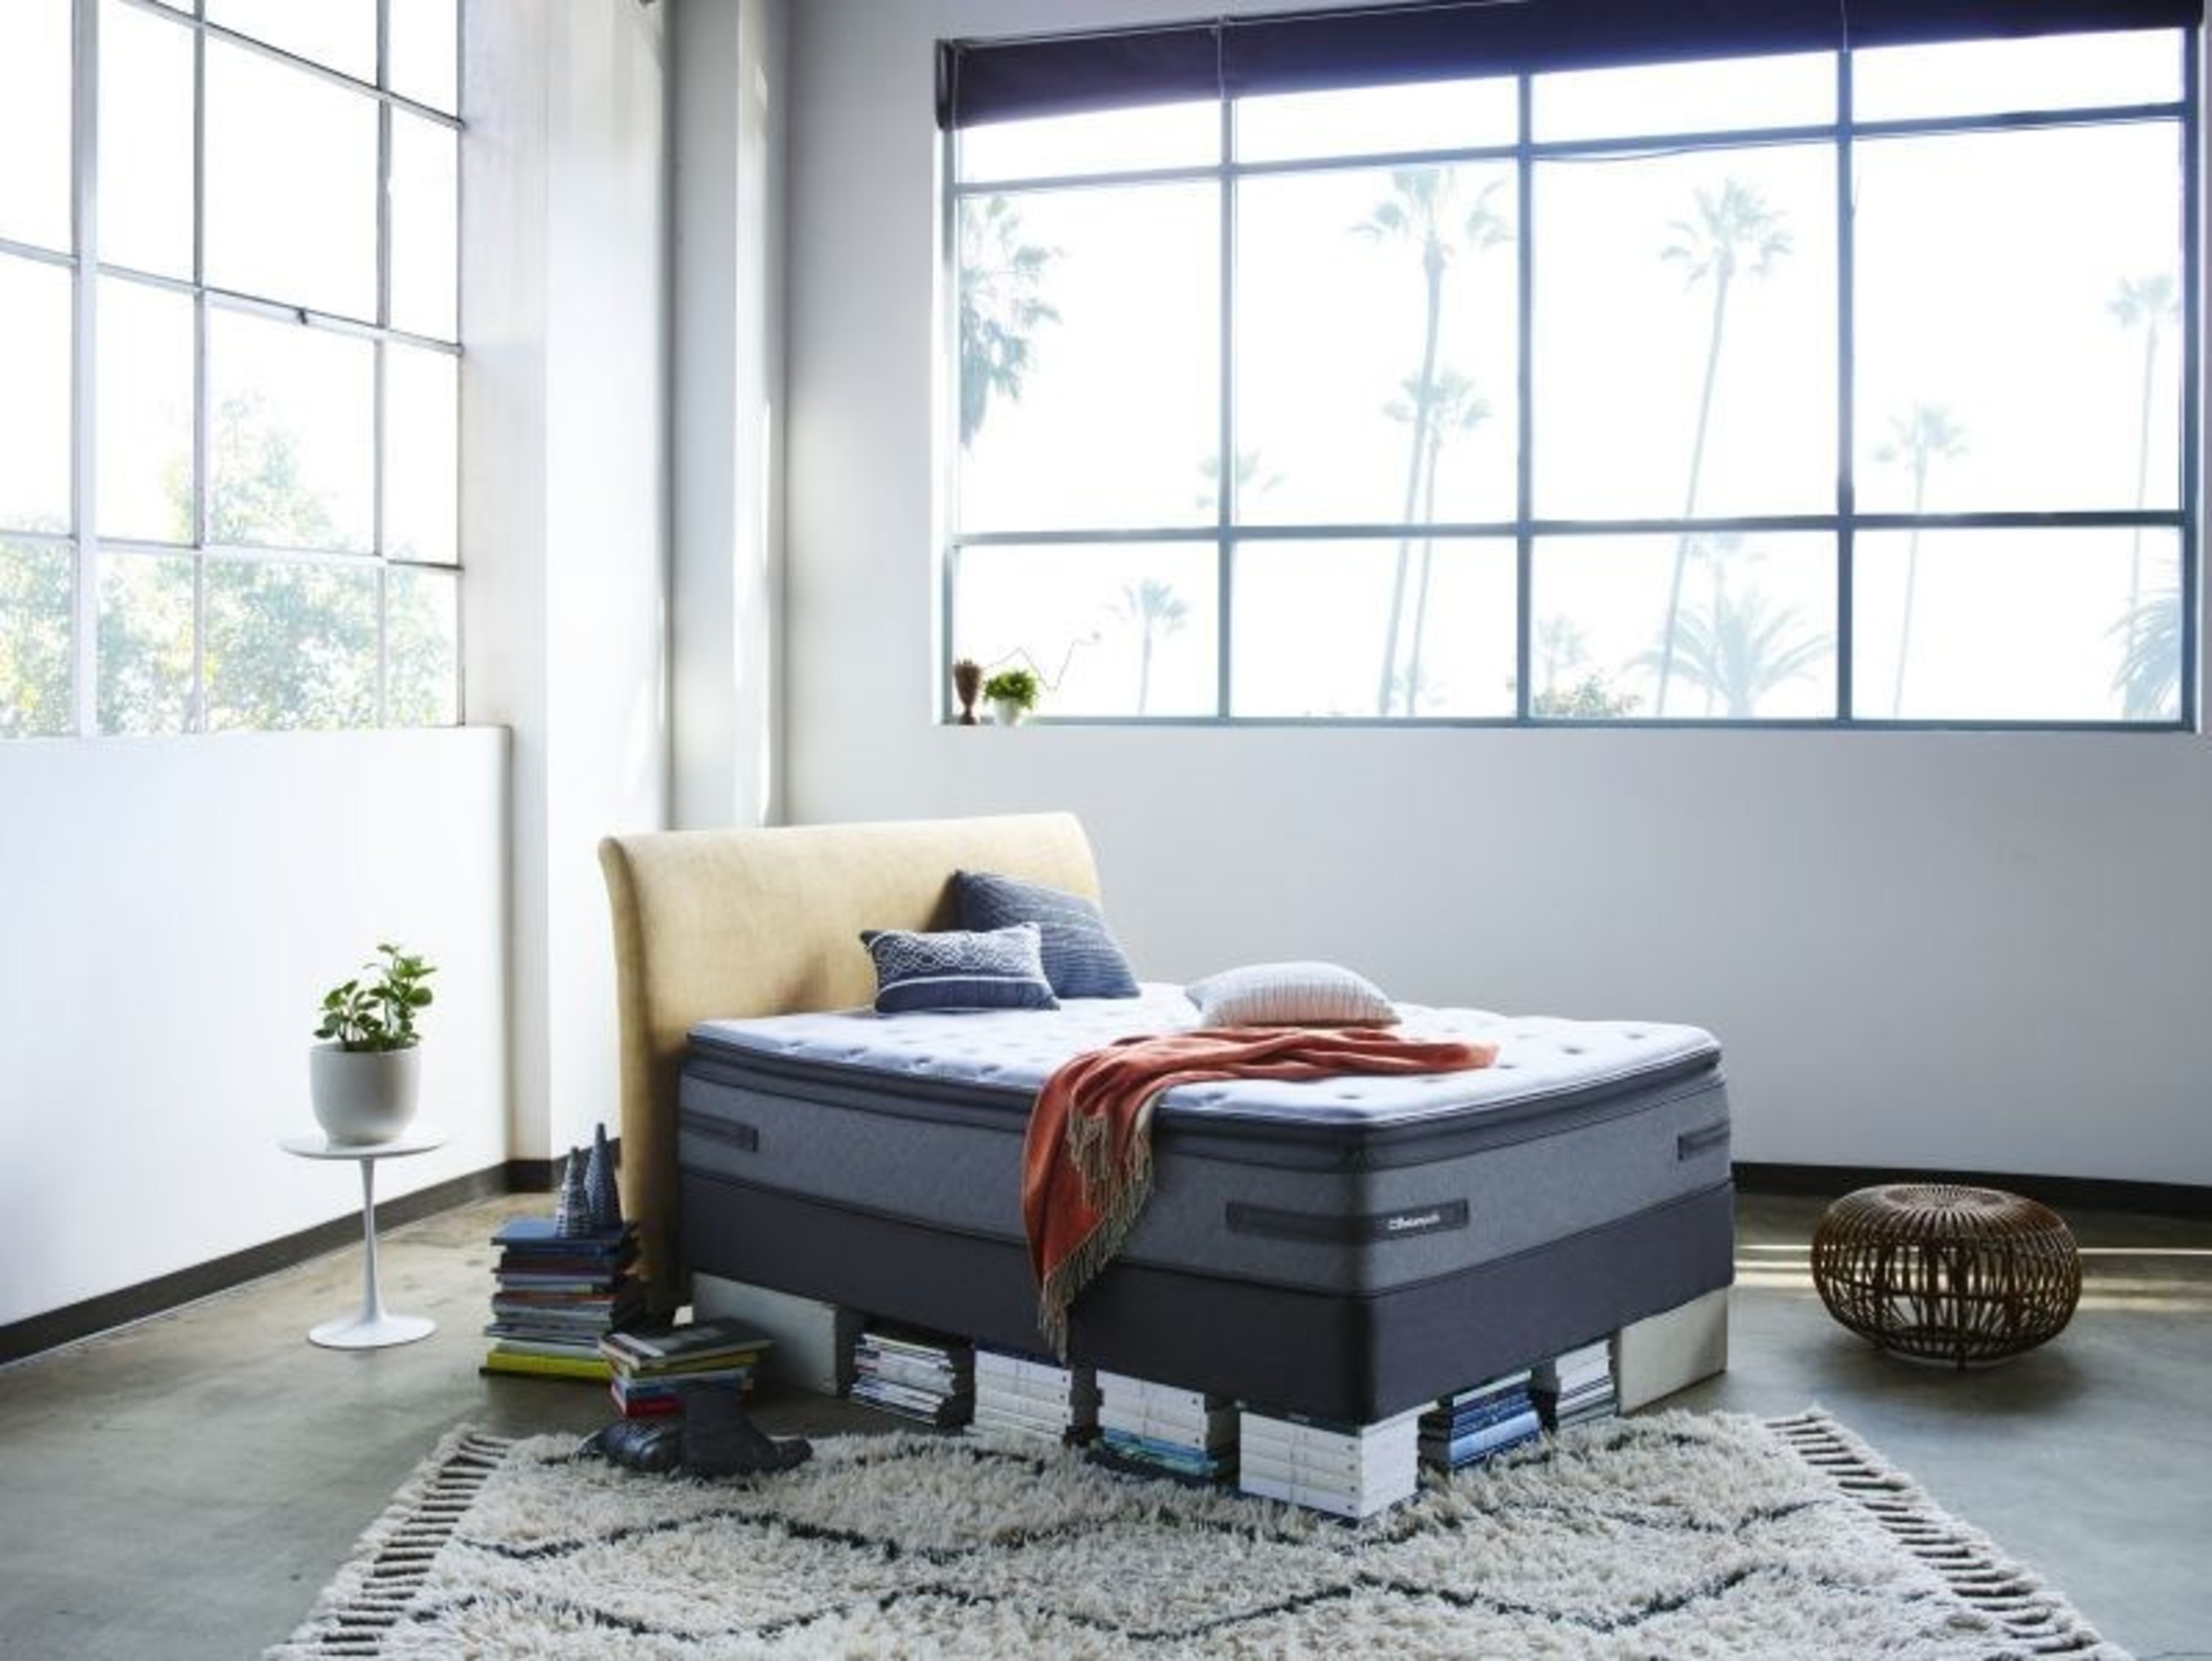 Sealy Posturepedic debuts new product line for 2015 at Las Vegas Market, pays tribute to back support roots for 65th anniversary.